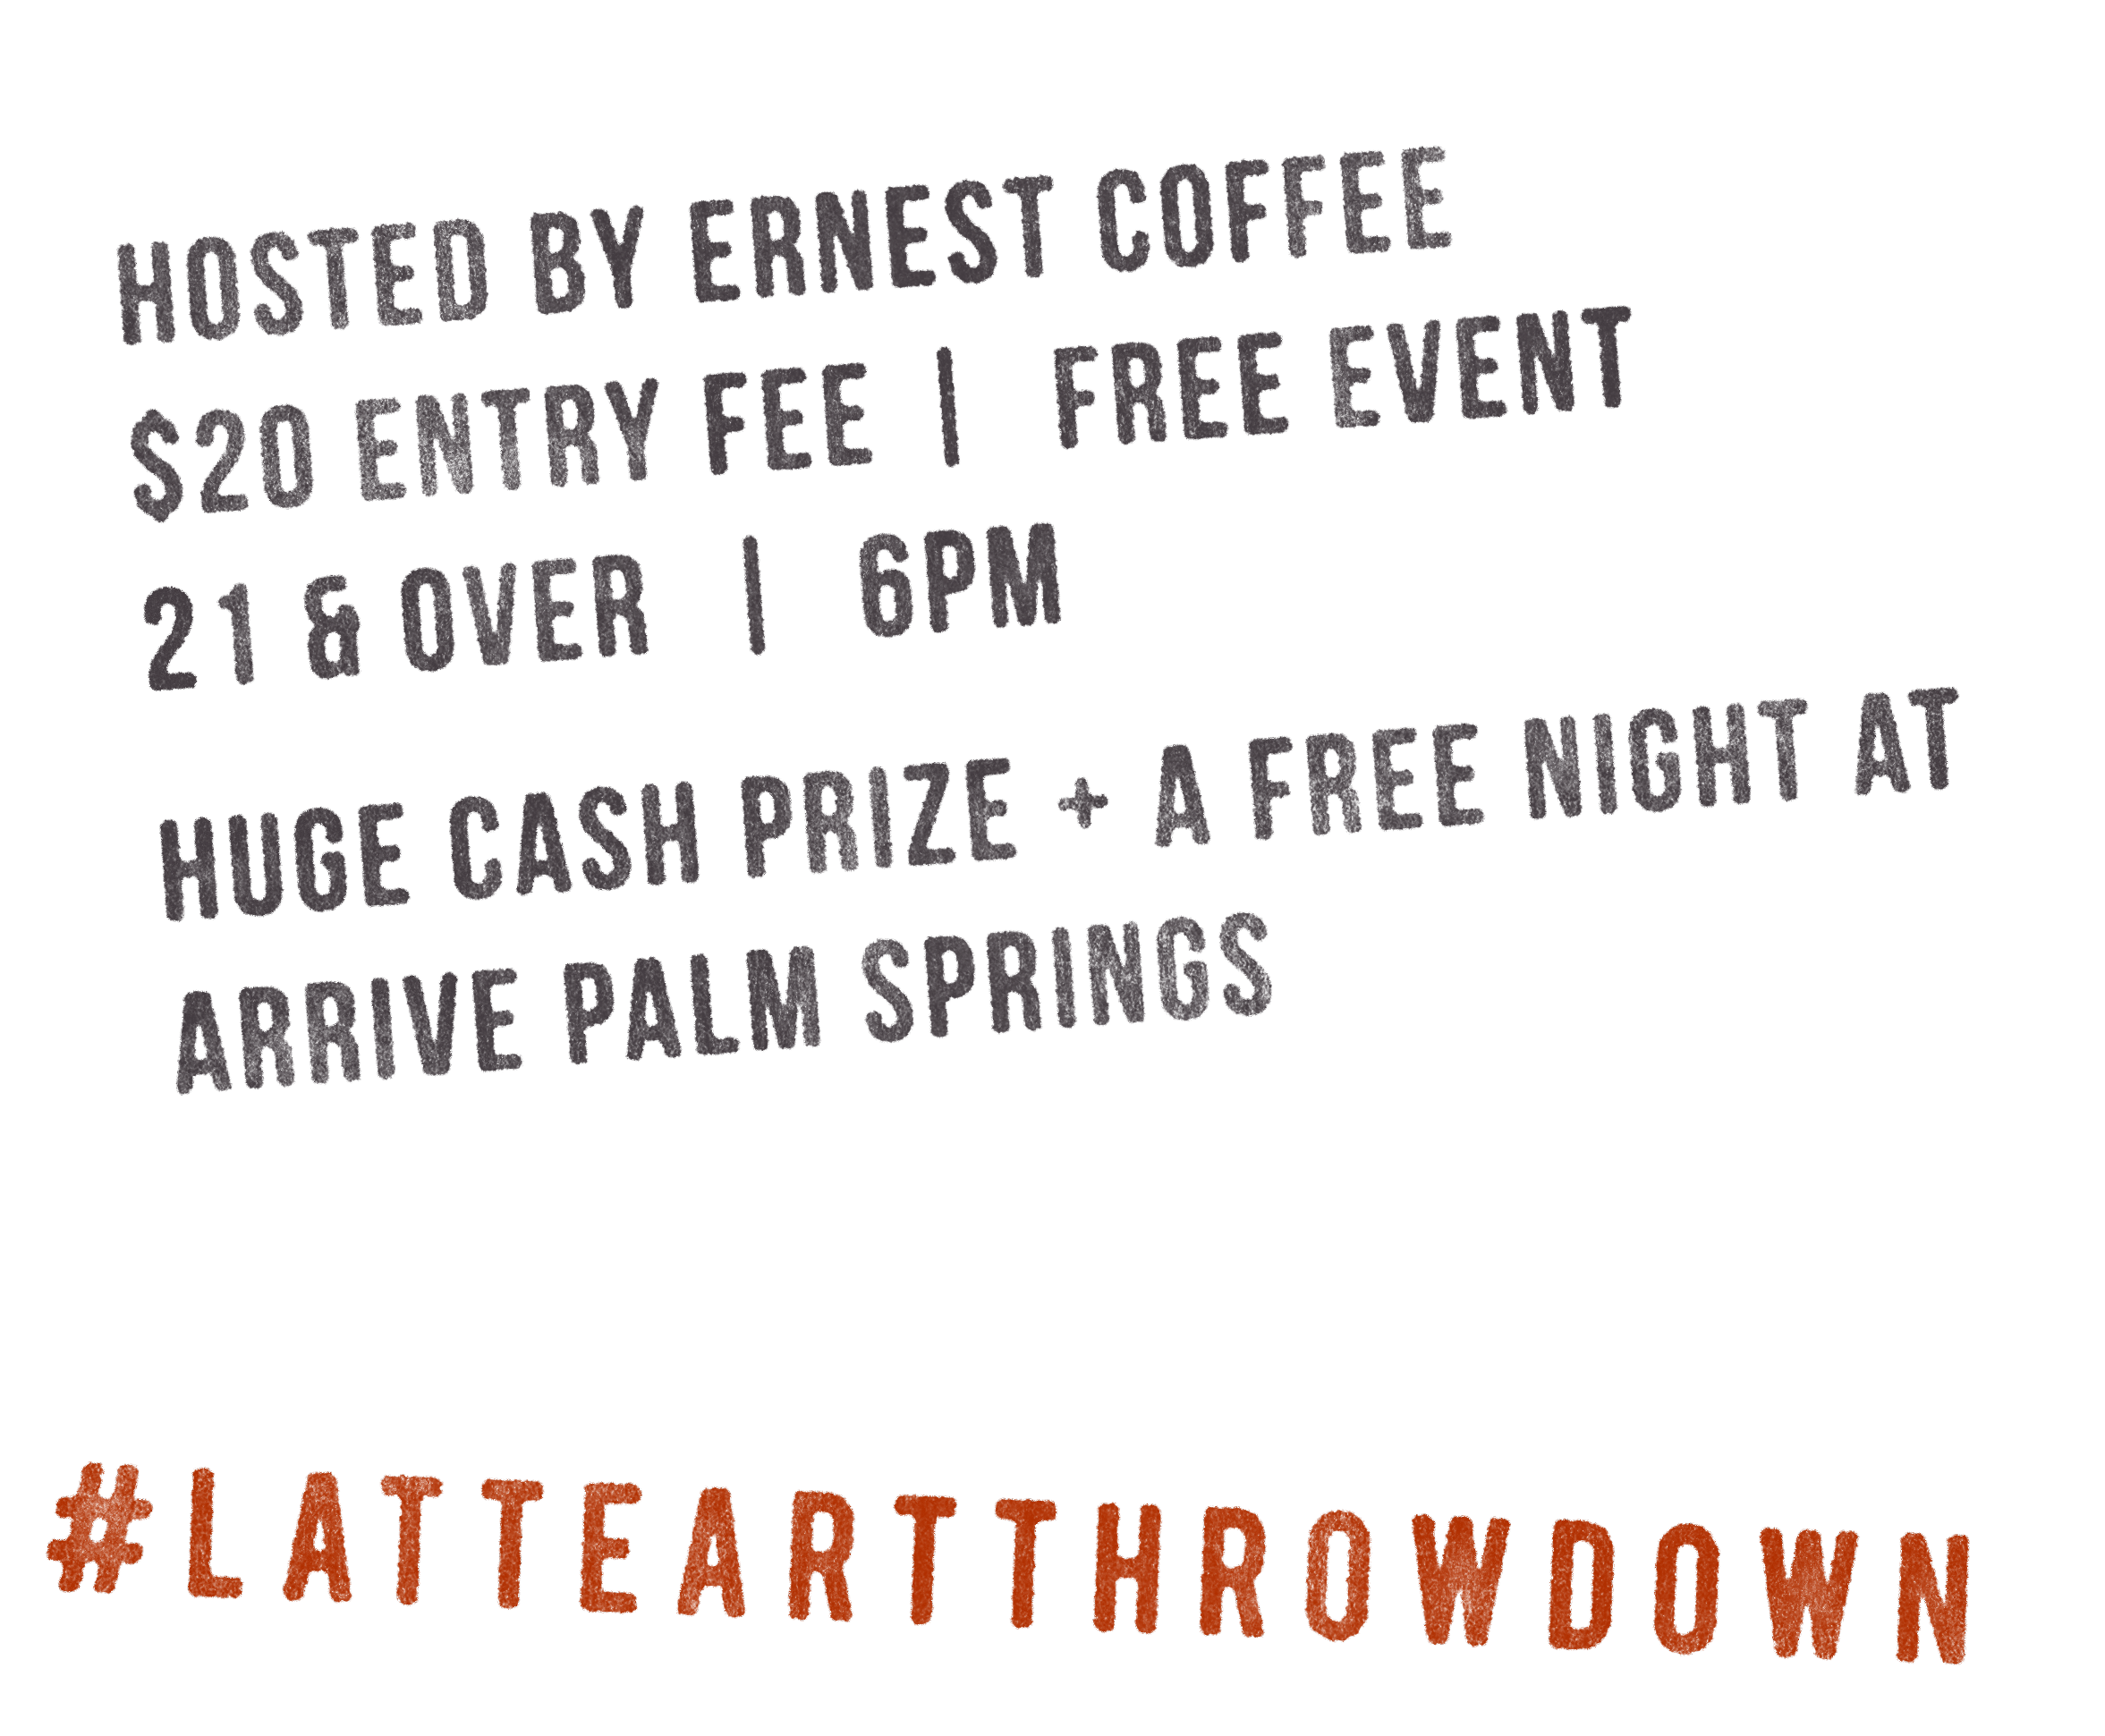 Free event hosted by Ernest Coffee. 21 & over at 6pm. $50 entry fee. Huge cash prize + free night at Arrive Palm Springs.